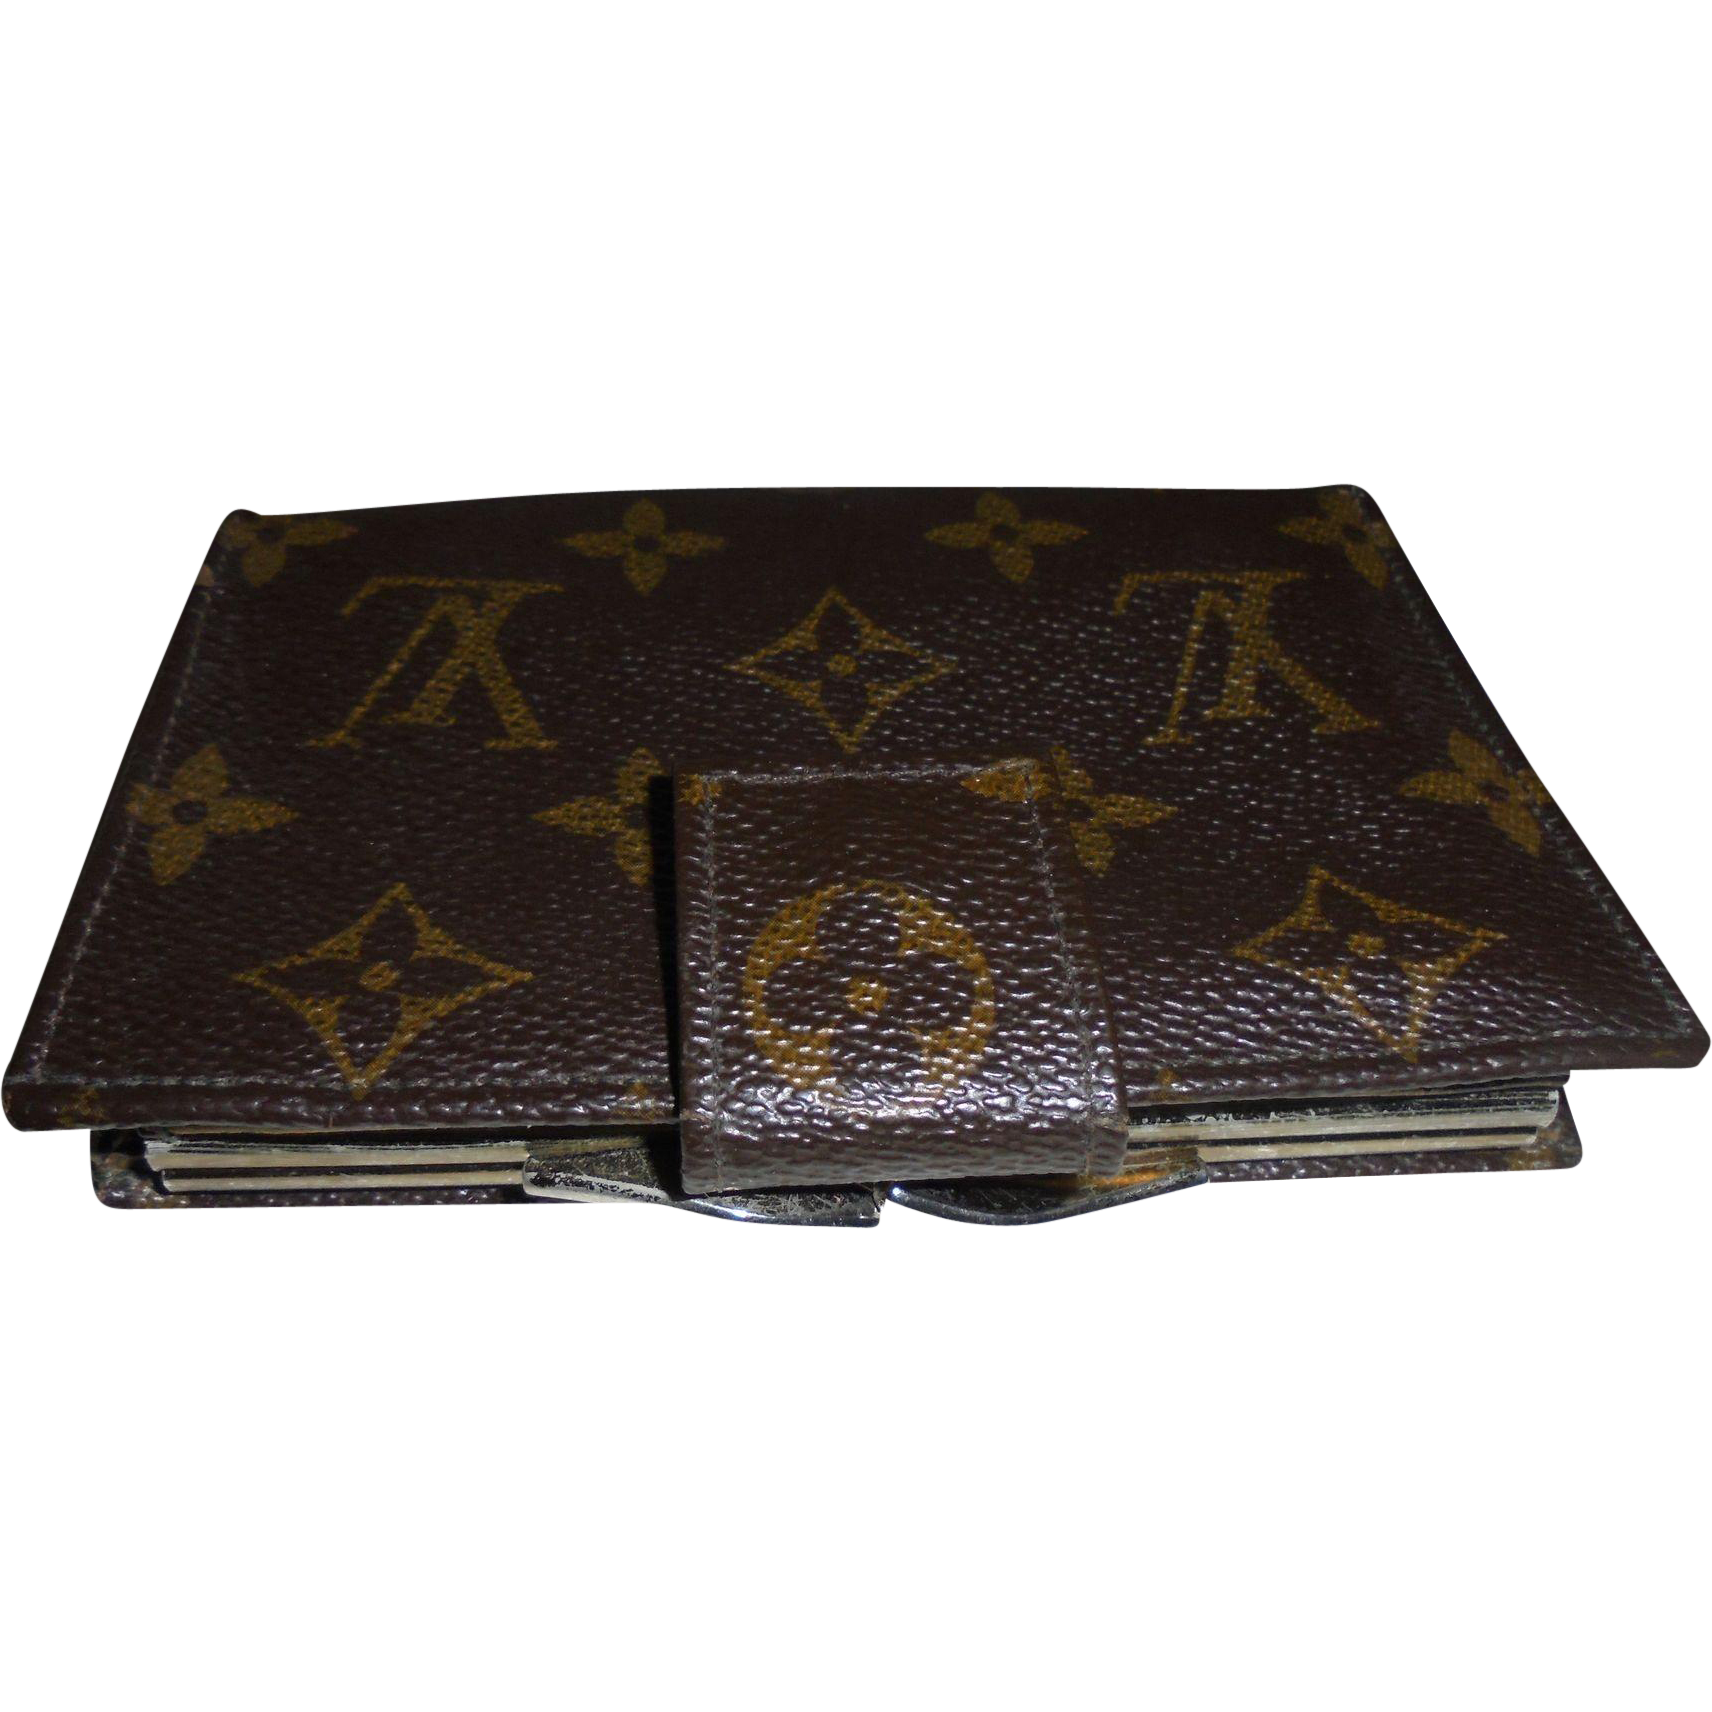 Vintage Louis Vuitton Wallet Made In Usa French Company Kisslock Clasp Found At Www Rubylane Com Louis Vuitton Wallet Louis Vuitton Vintage Louis Vuitton